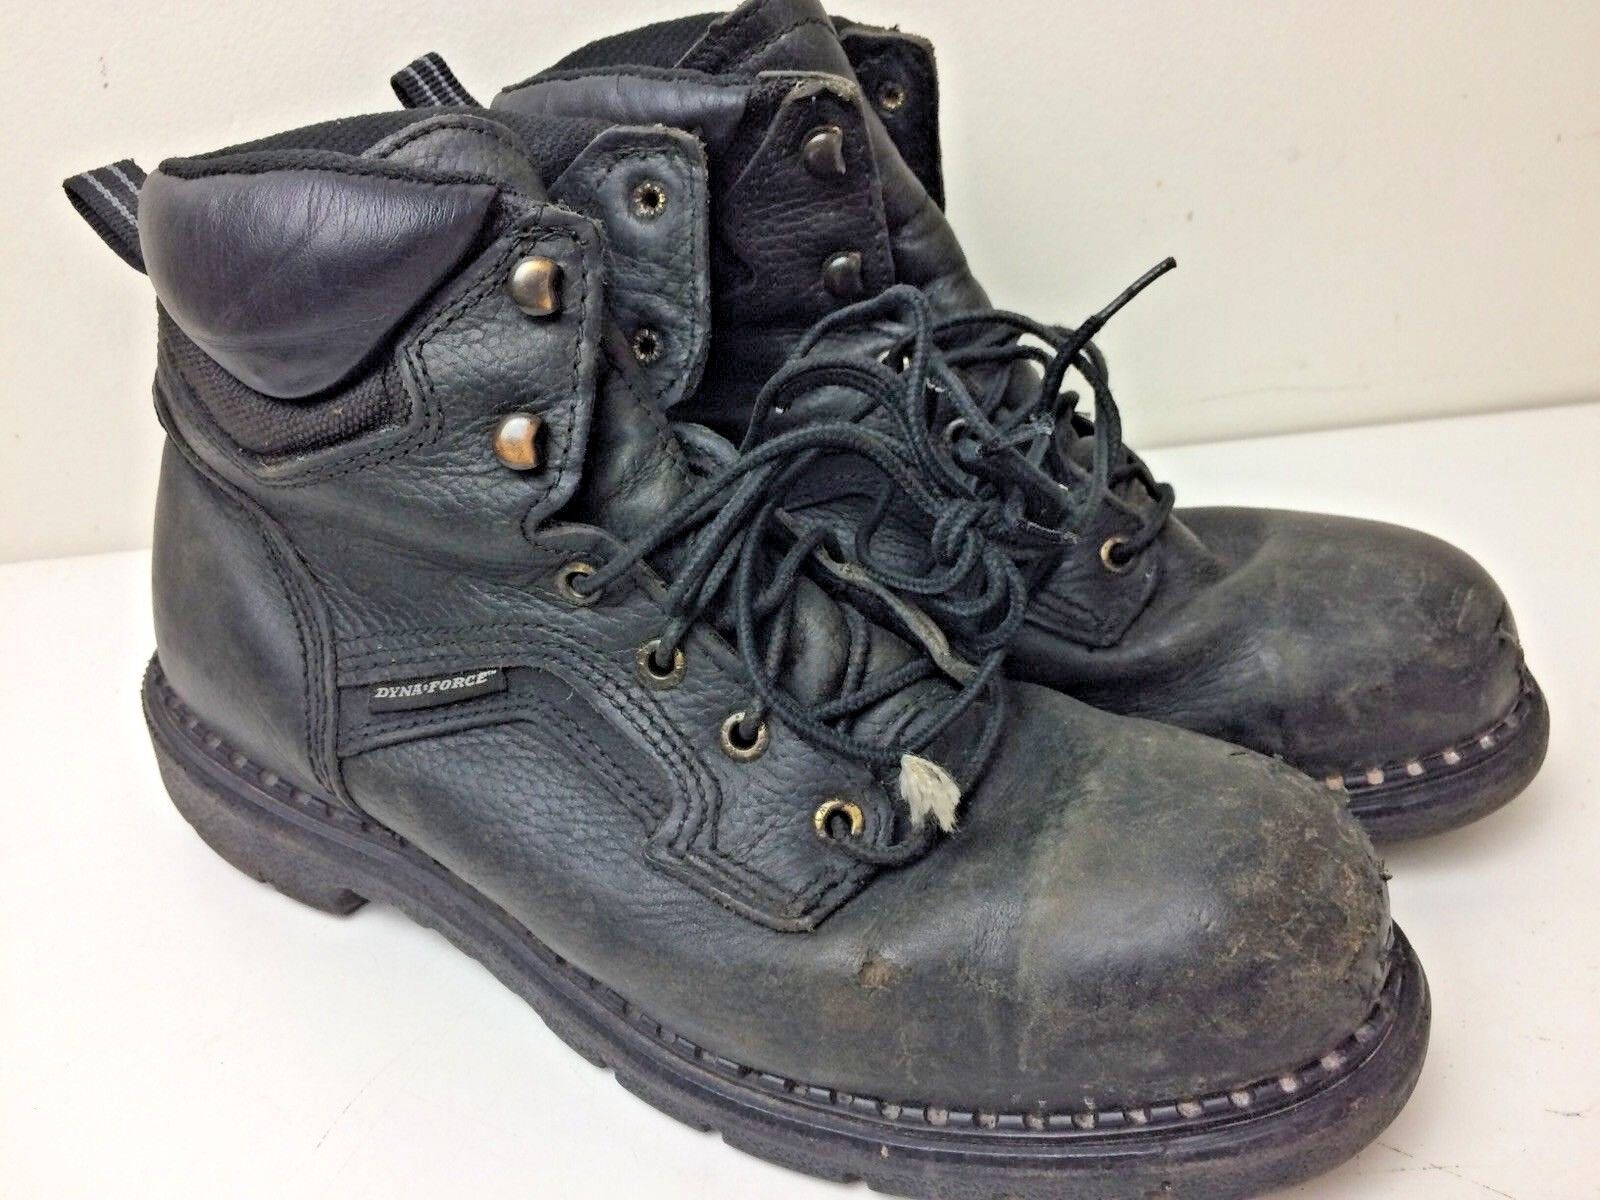 Red Wing Dyna Force ASTM Black Leather Leather Leather Steel Toe Ankle Boots 9 1/2 USA 138eb4